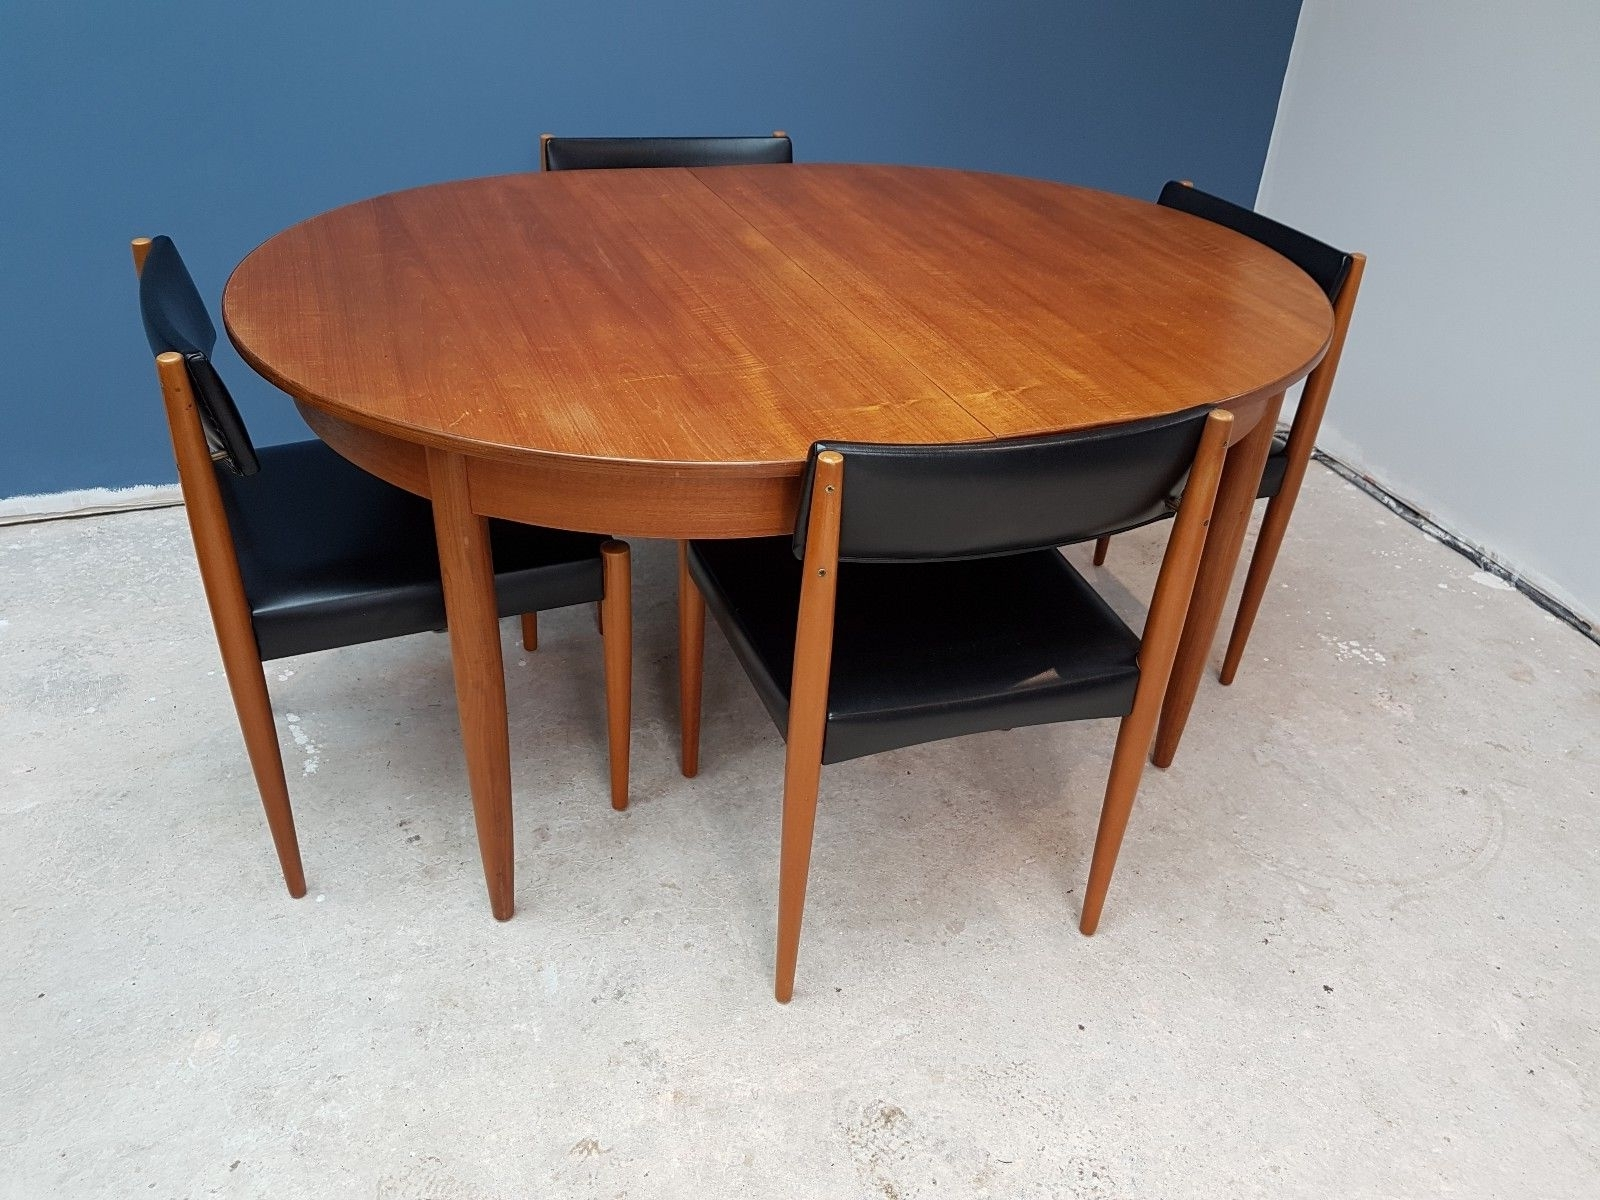 Vintage Retro G Plan Teak Extending Dining Table And 4 Danish Style Inside Newest Retro Extending Dining Tables (View 25 of 25)